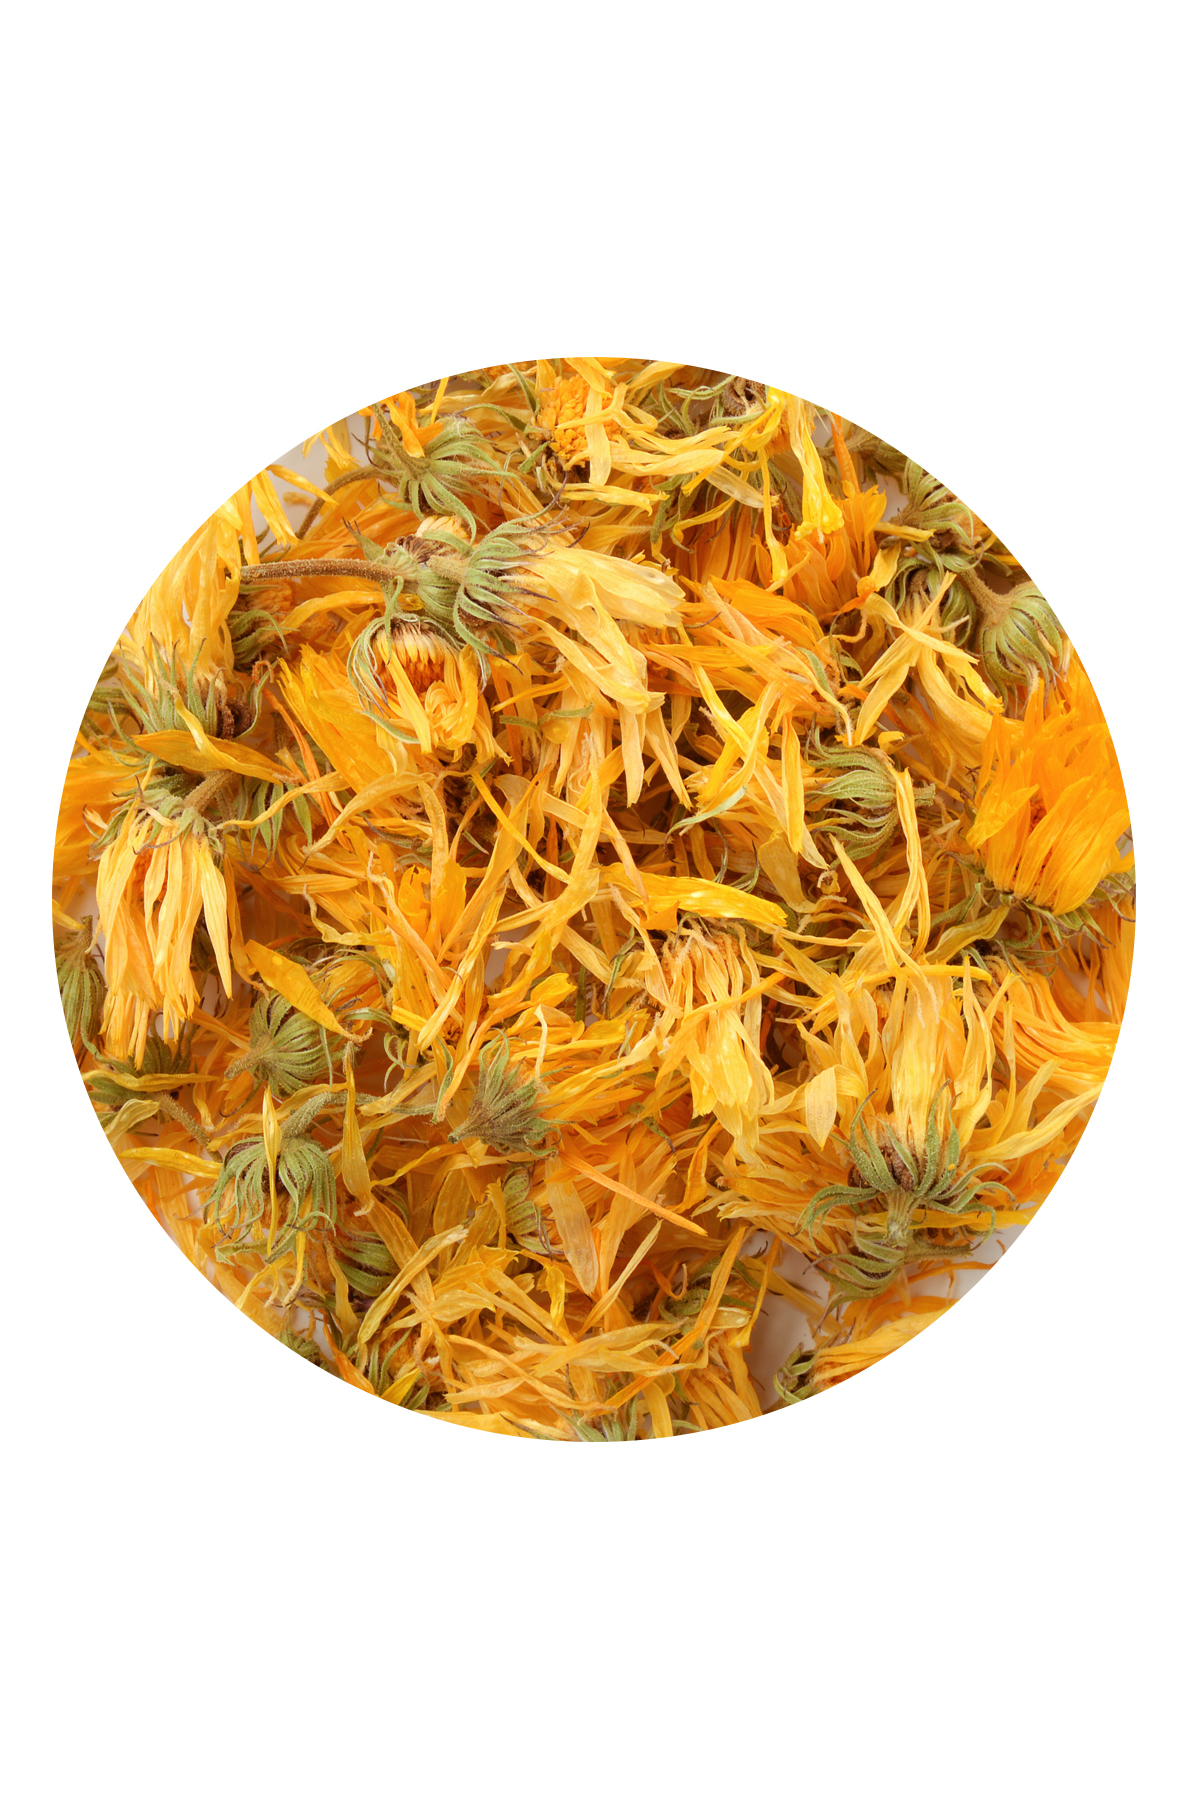 КАЛЕНДУЛА - CALENDULA OFFICINALIS - ЦВЕТЫ фото